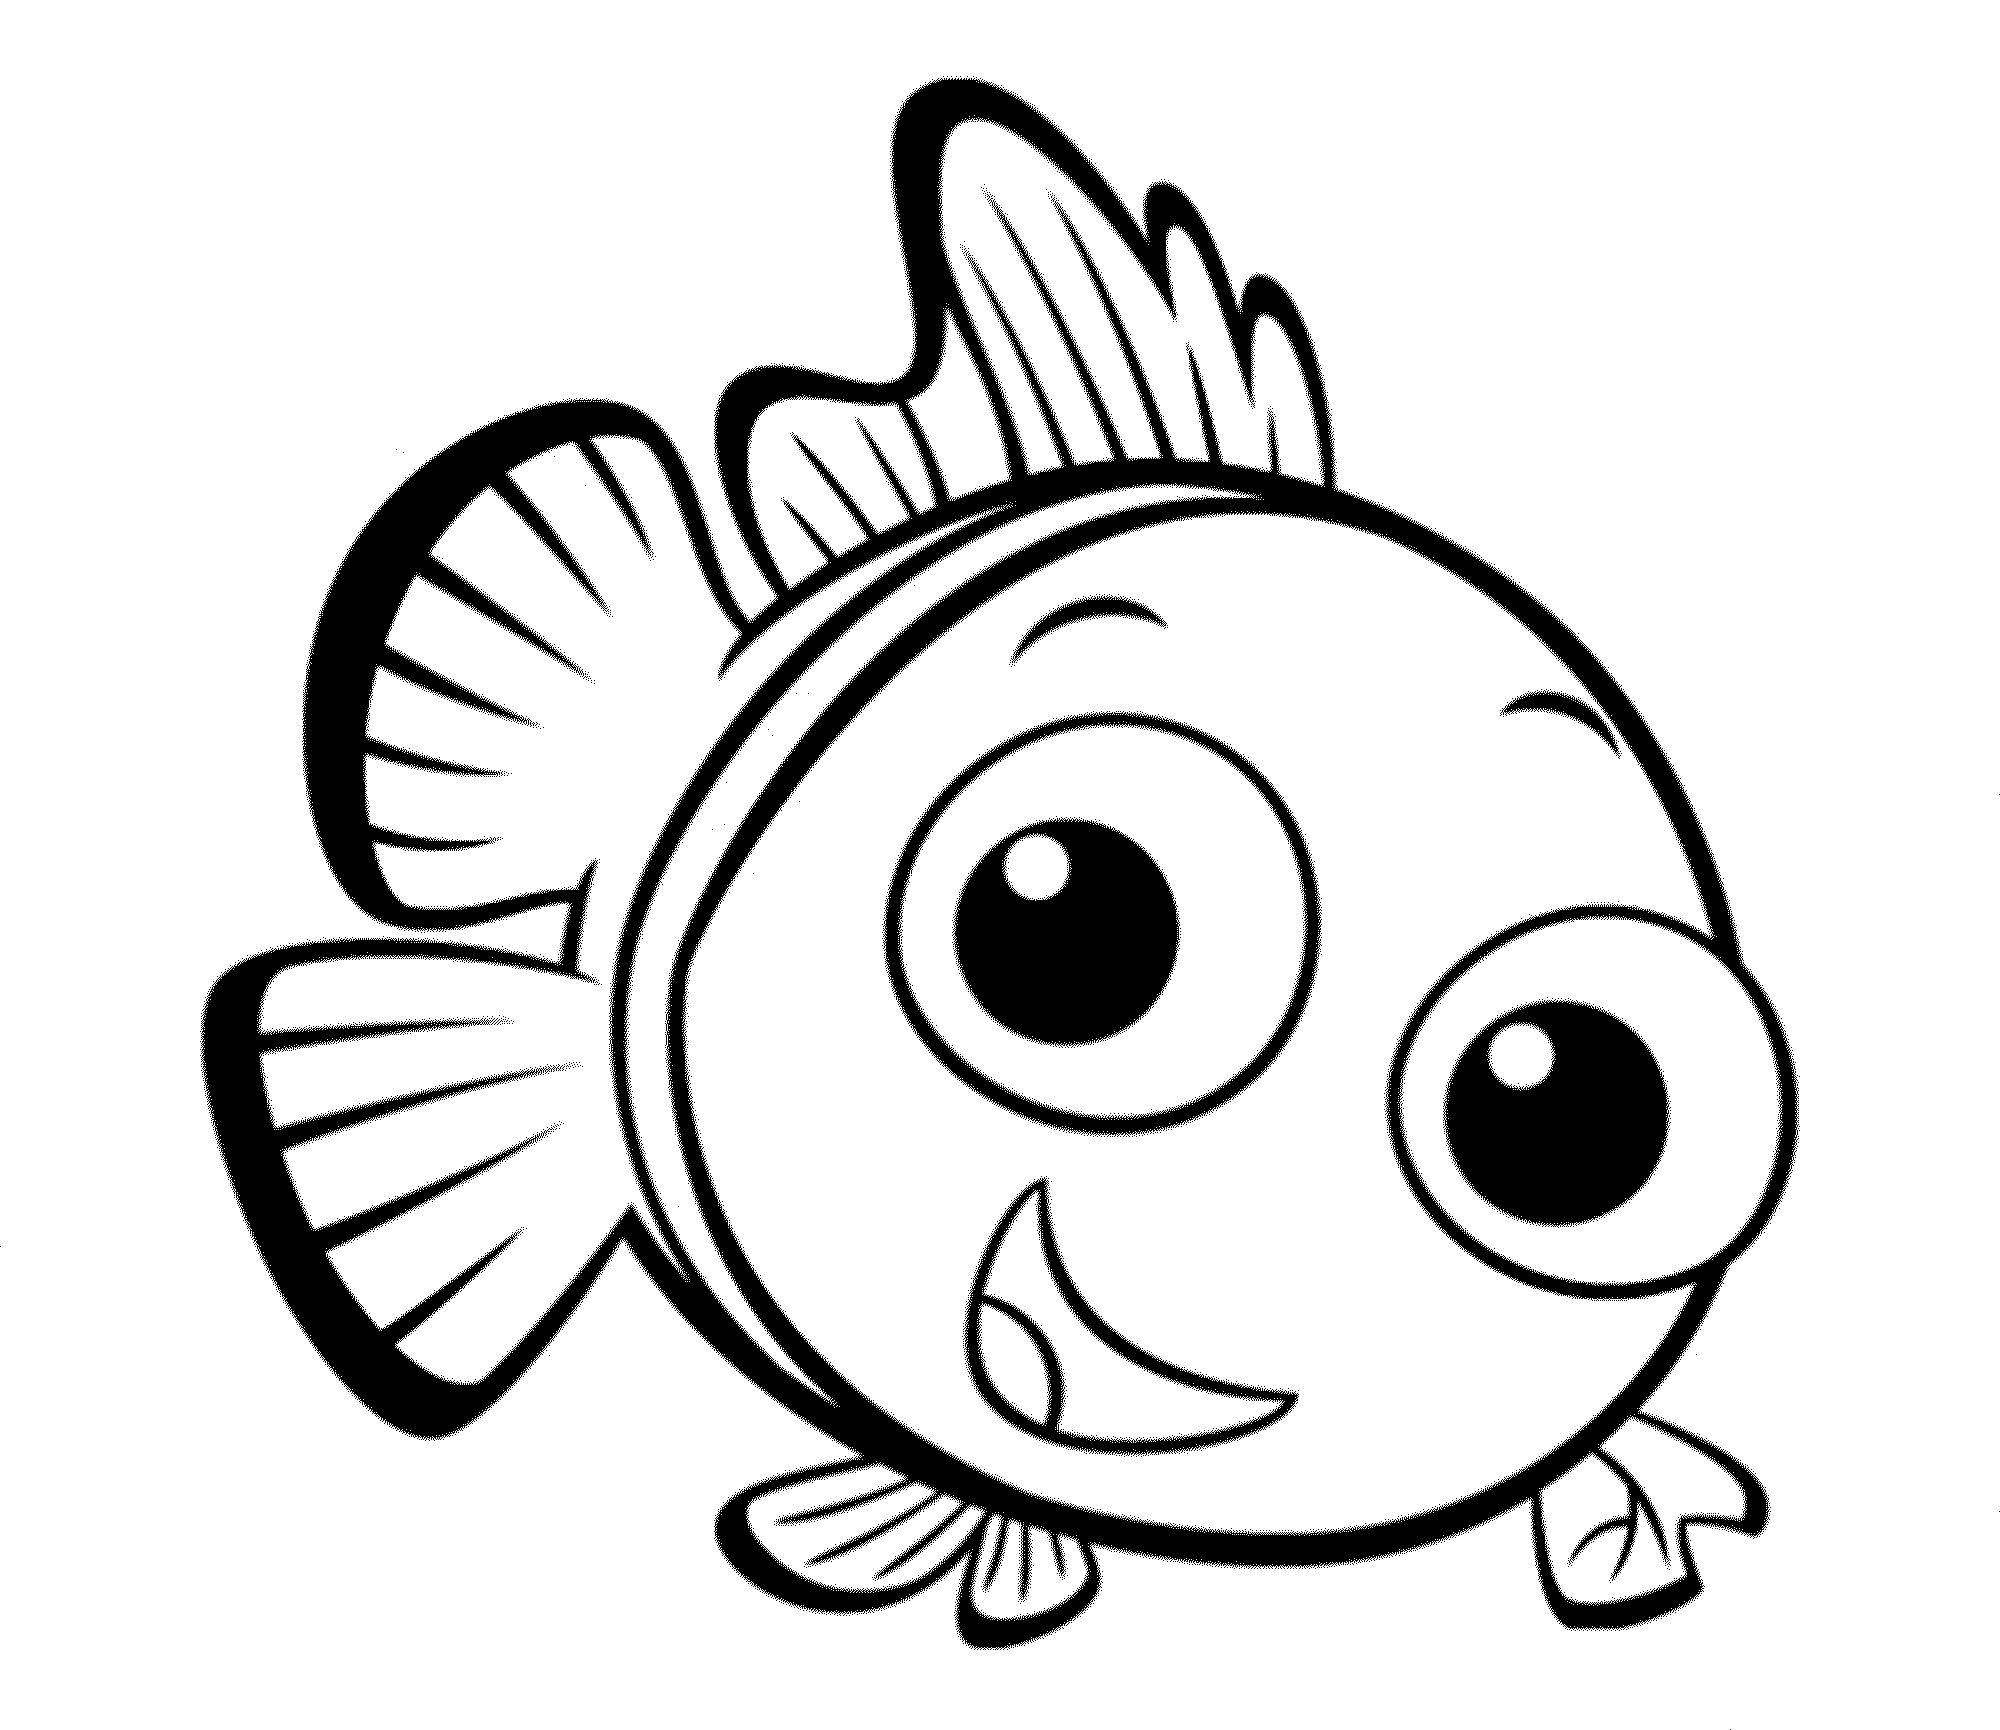 Uncategorized Cartoon Fish Coloring Pages print download cute and educative fish coloring pages gallery of pages